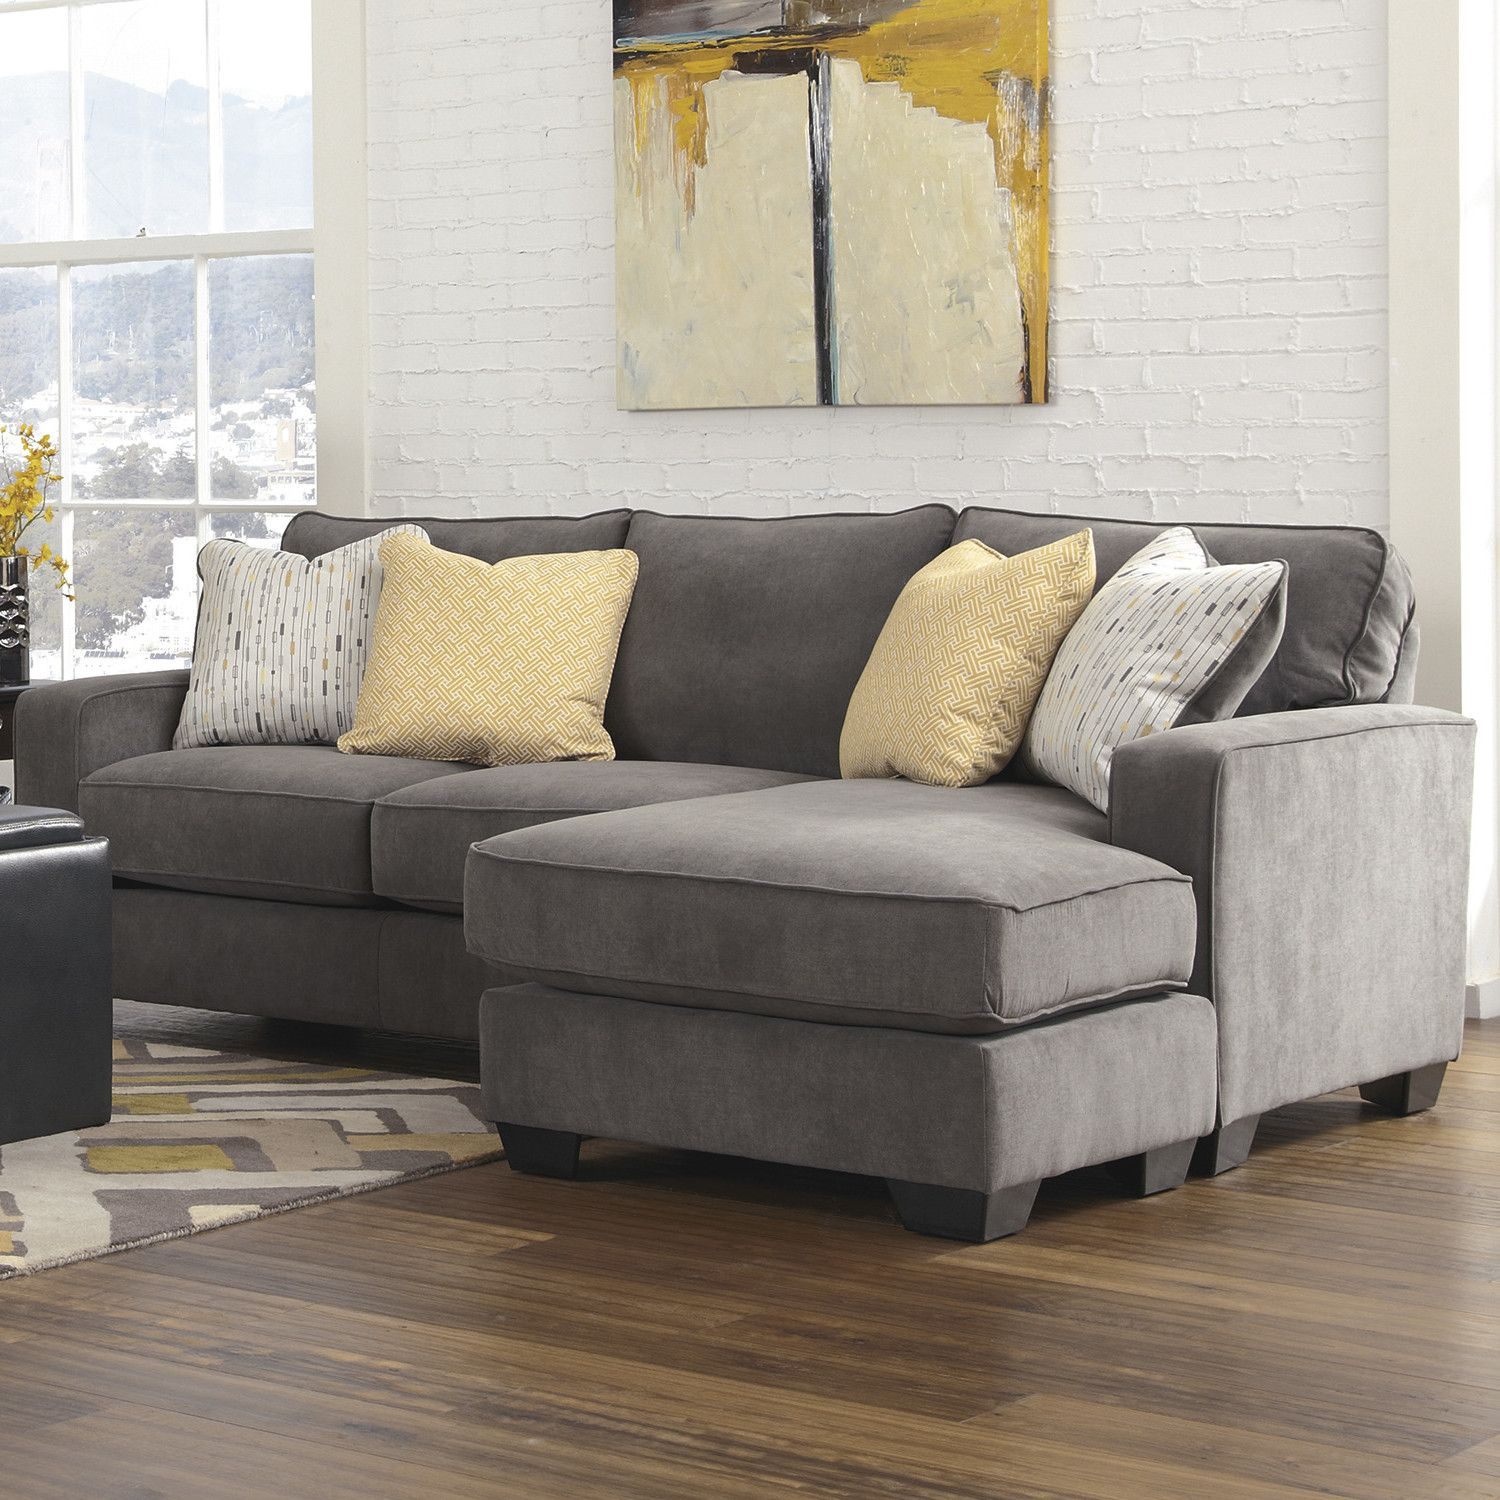 Mercer41 Kessel Reversible Chaise Sectional | Apartment and Dorm ...